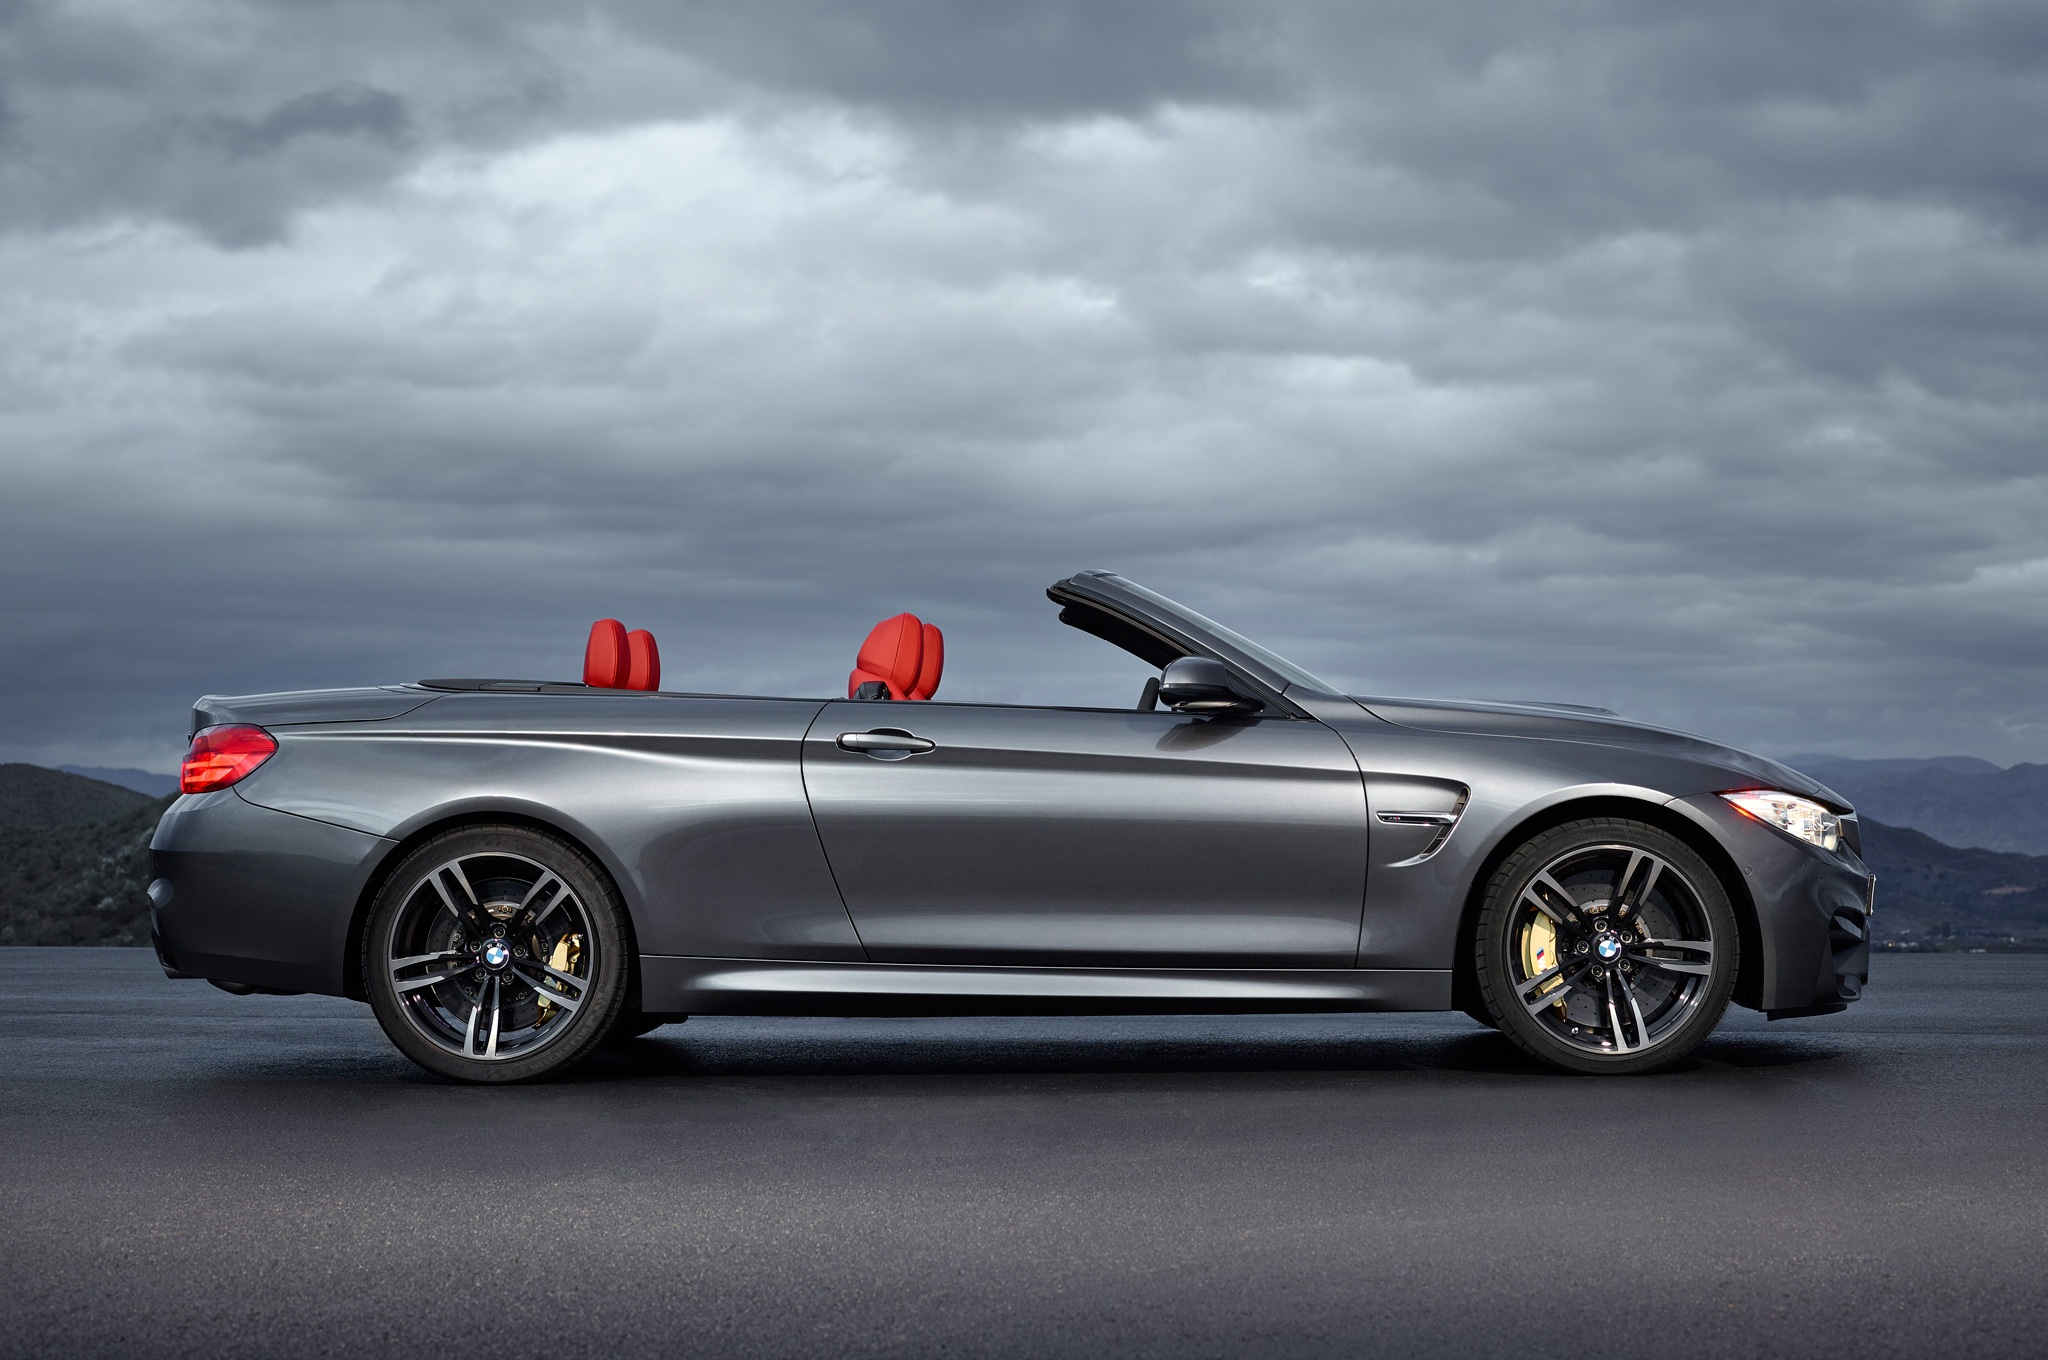 2015 Bmw M4 Convertible Perfect Side View (Photo 39 of 50)